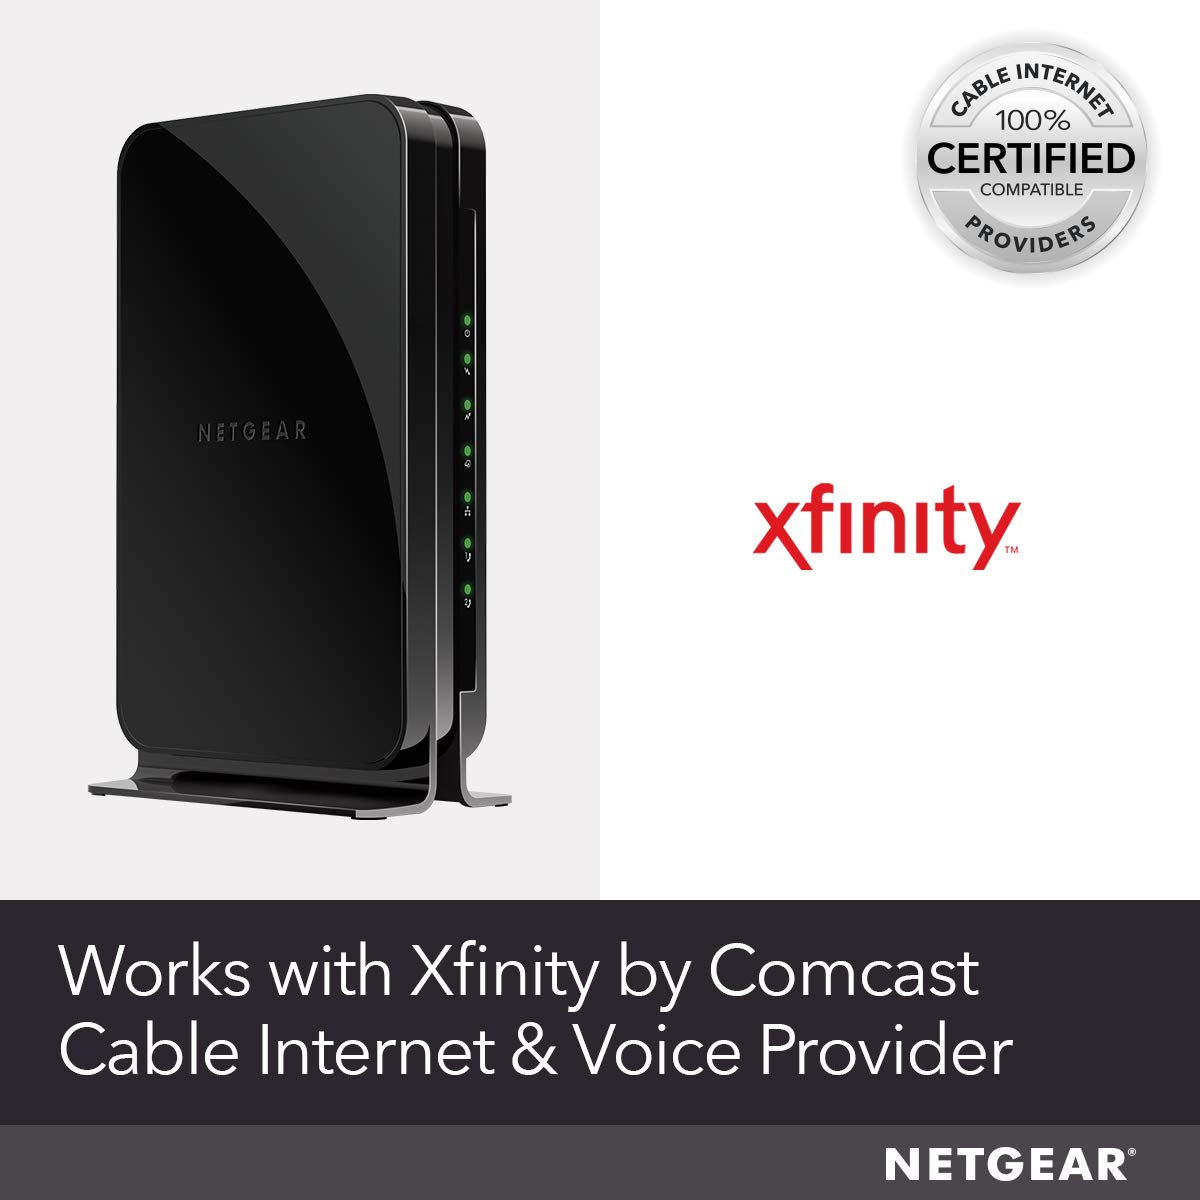 Wifi Light Blinking On Xfinity Router